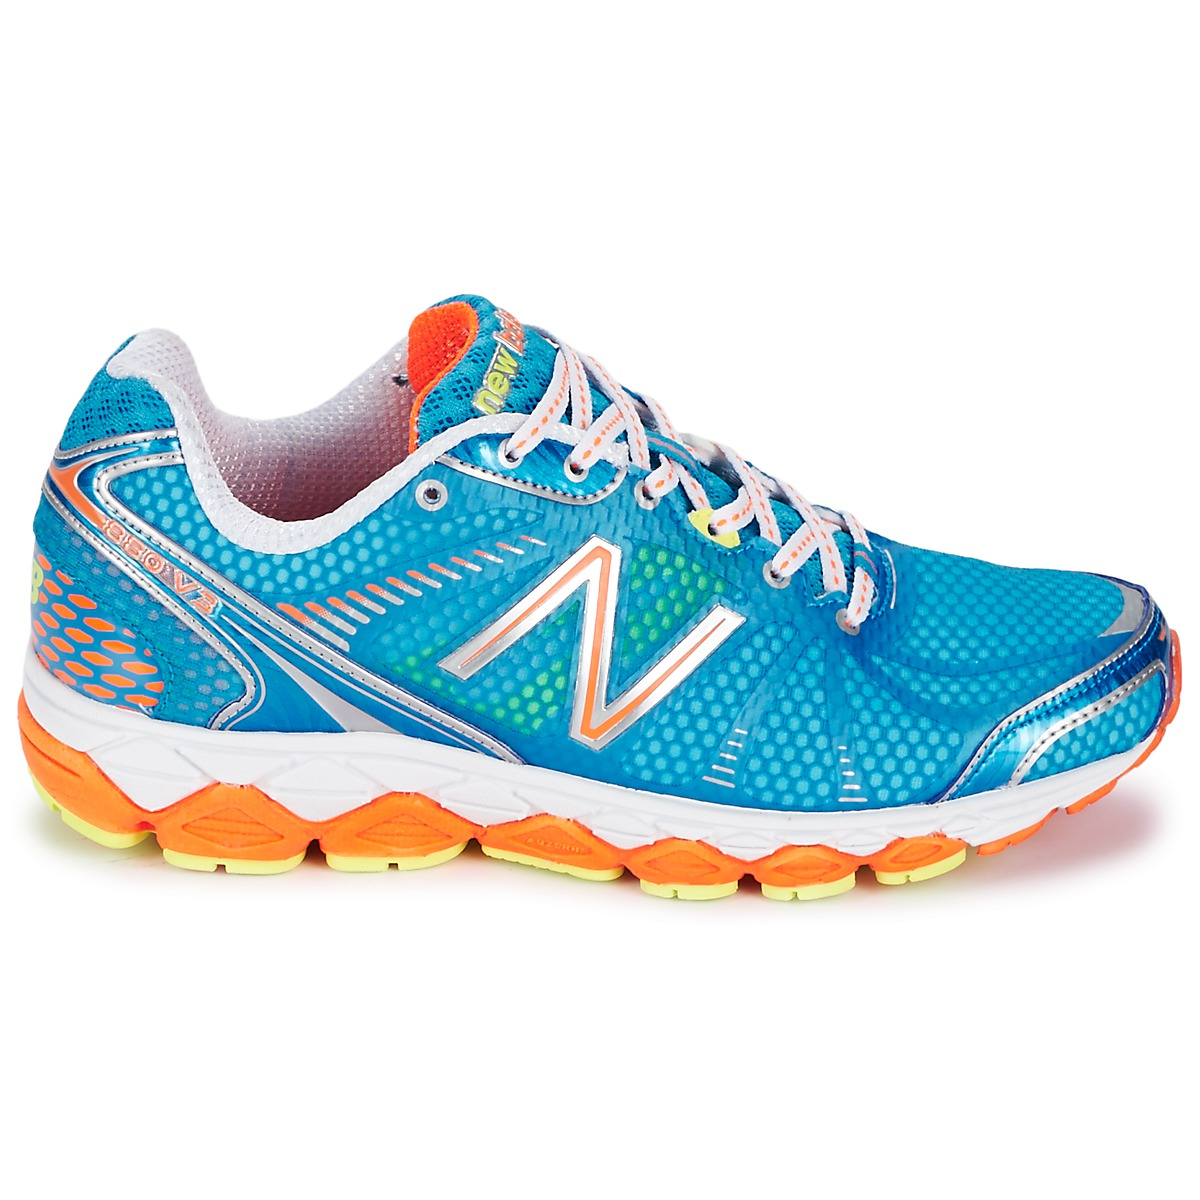 Bright Trainers Make You Run Faster